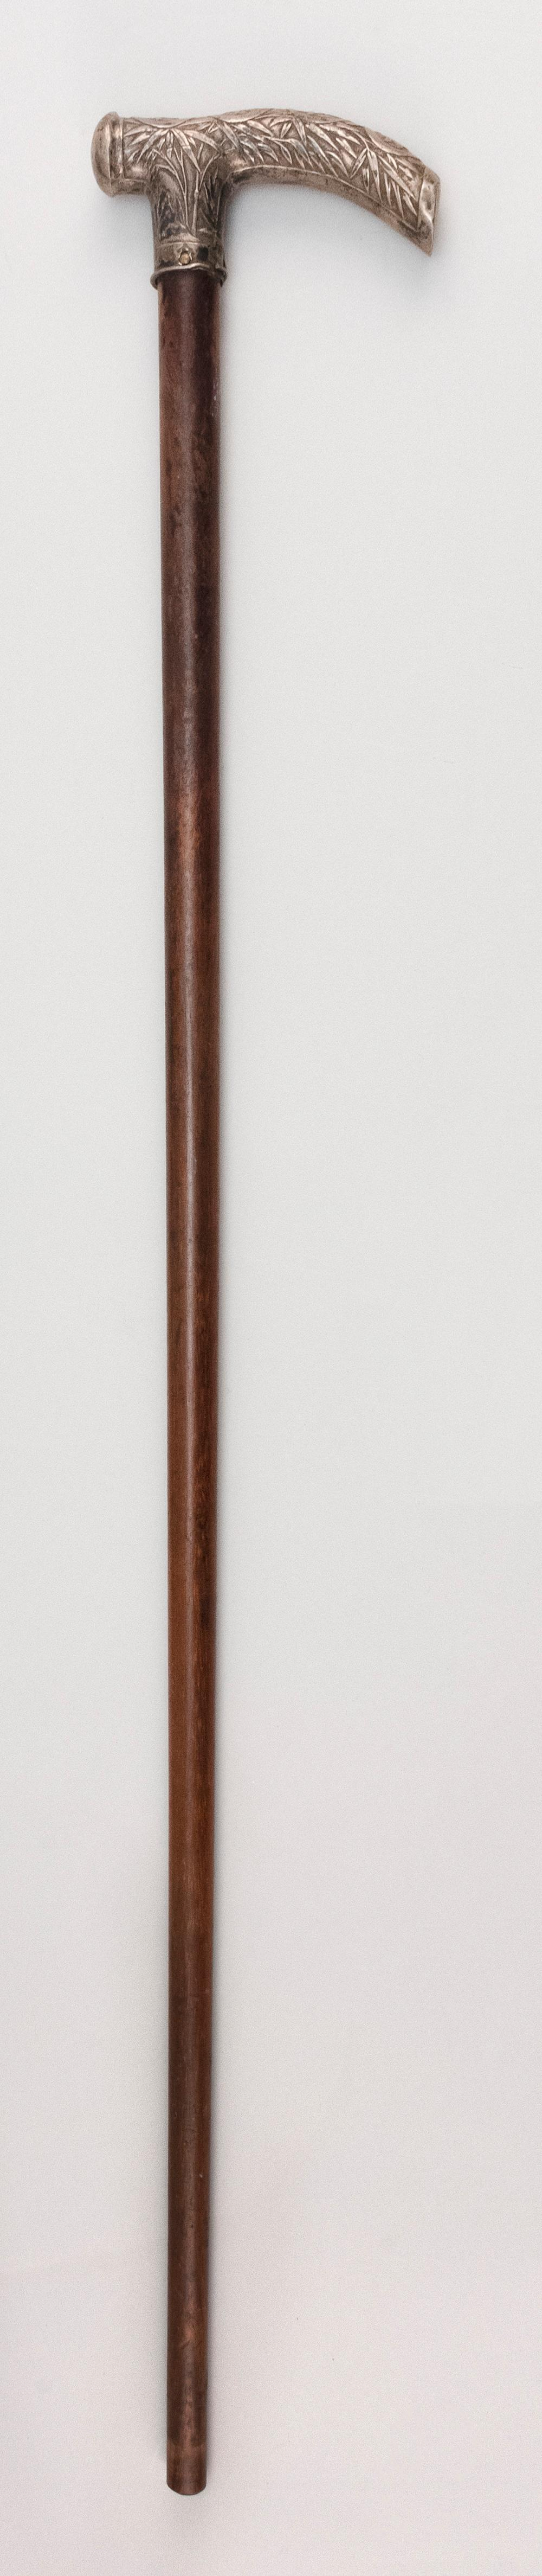 "CHINESE EXPORT SILVER AND WALNUT CANE With bamboo and calligraphic design. Length 31.5""."